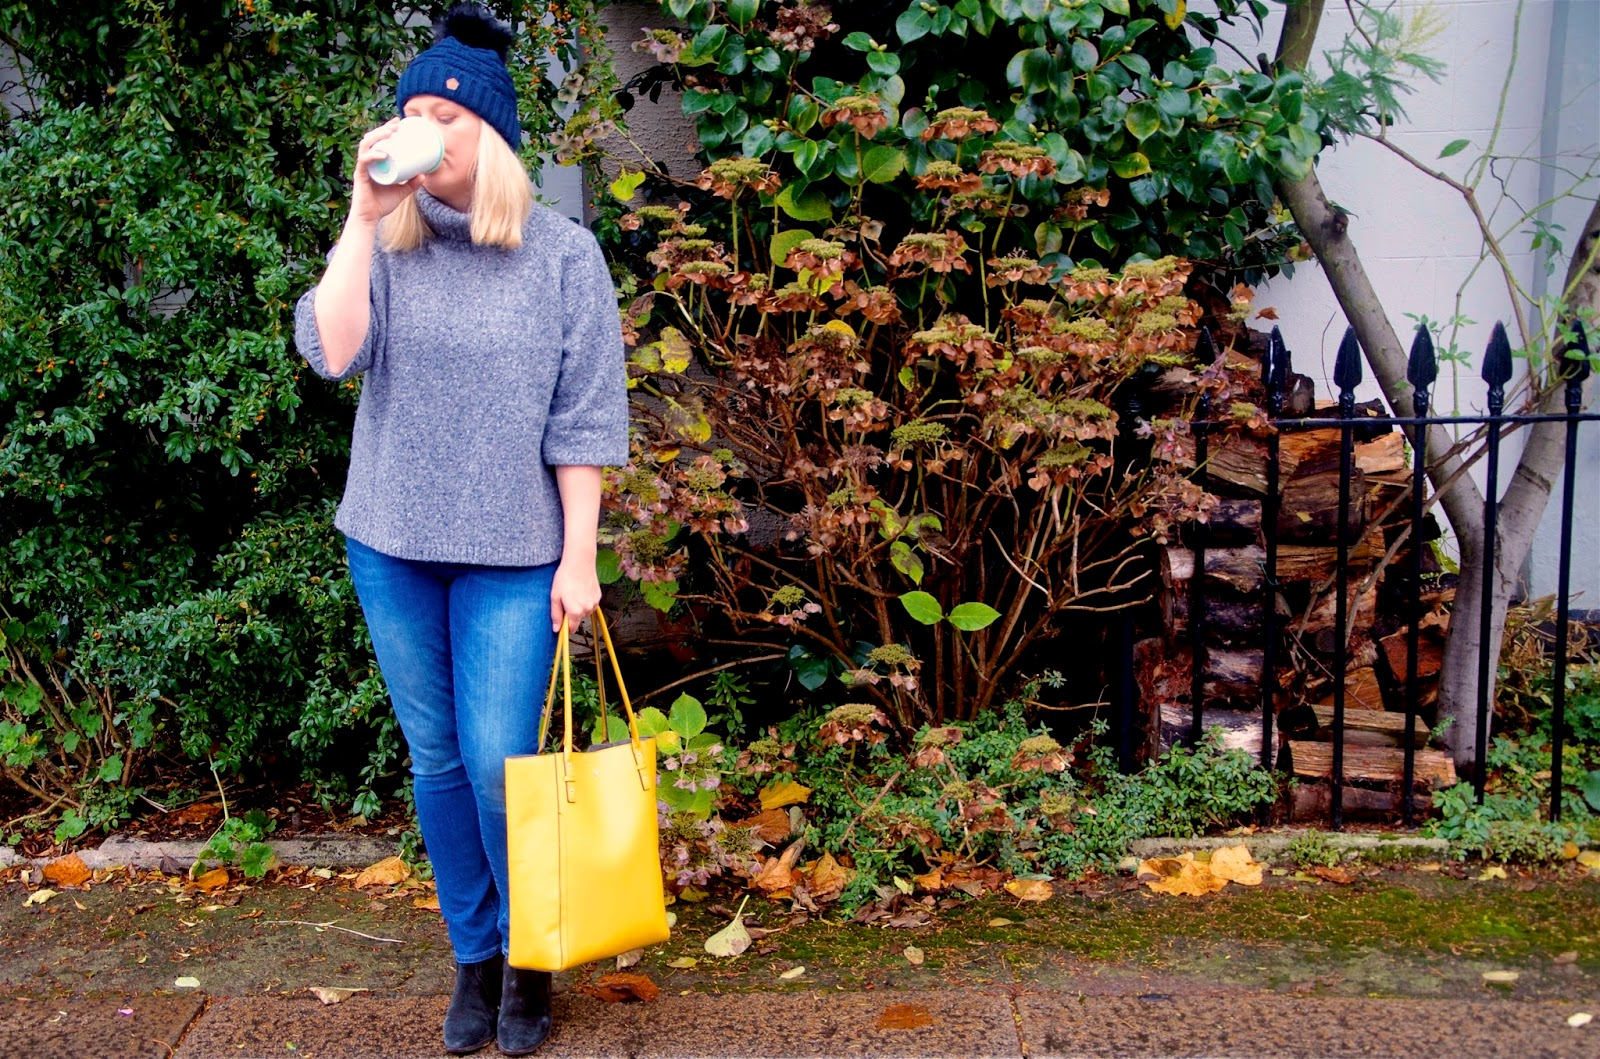 Yellow bag, white coffee cup, grey sweater, skinny jeans, navy hat and black boots.